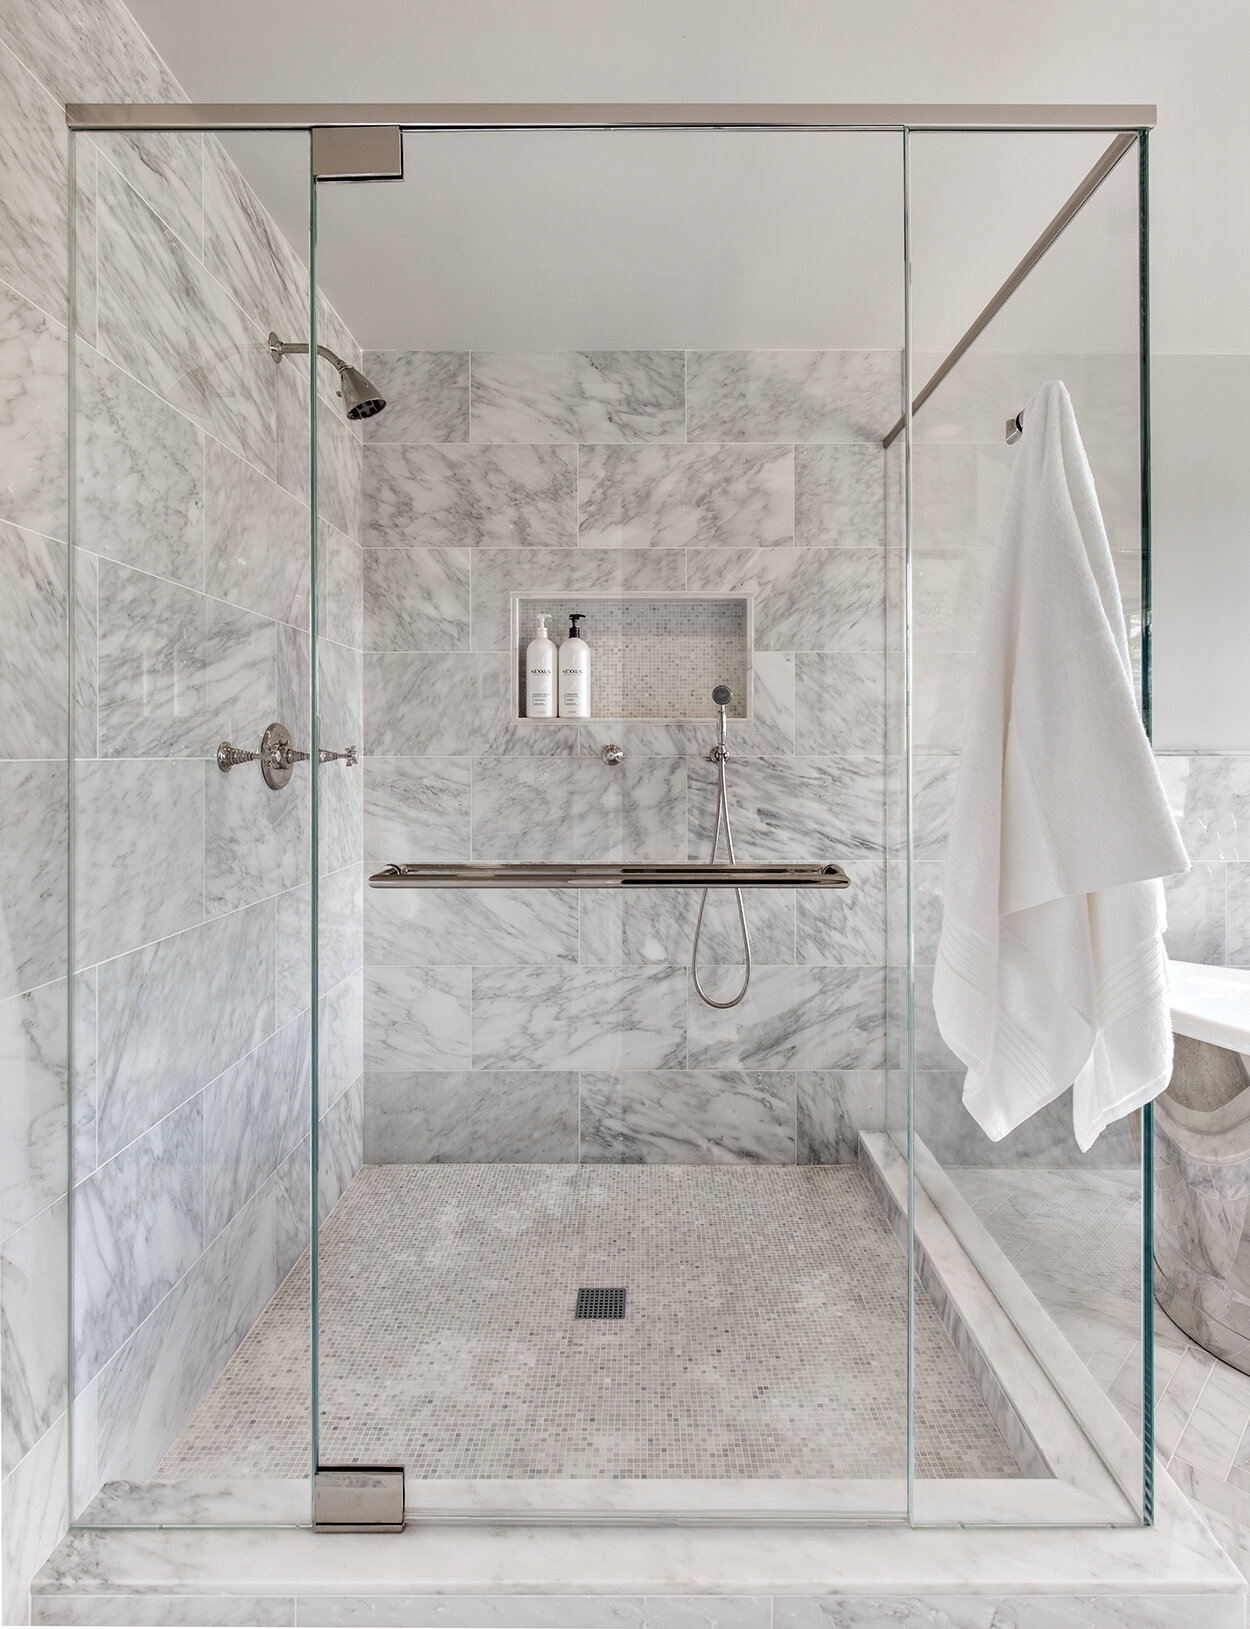 11 Dazzling Shower Tile Ideas For Your Shower Renovation